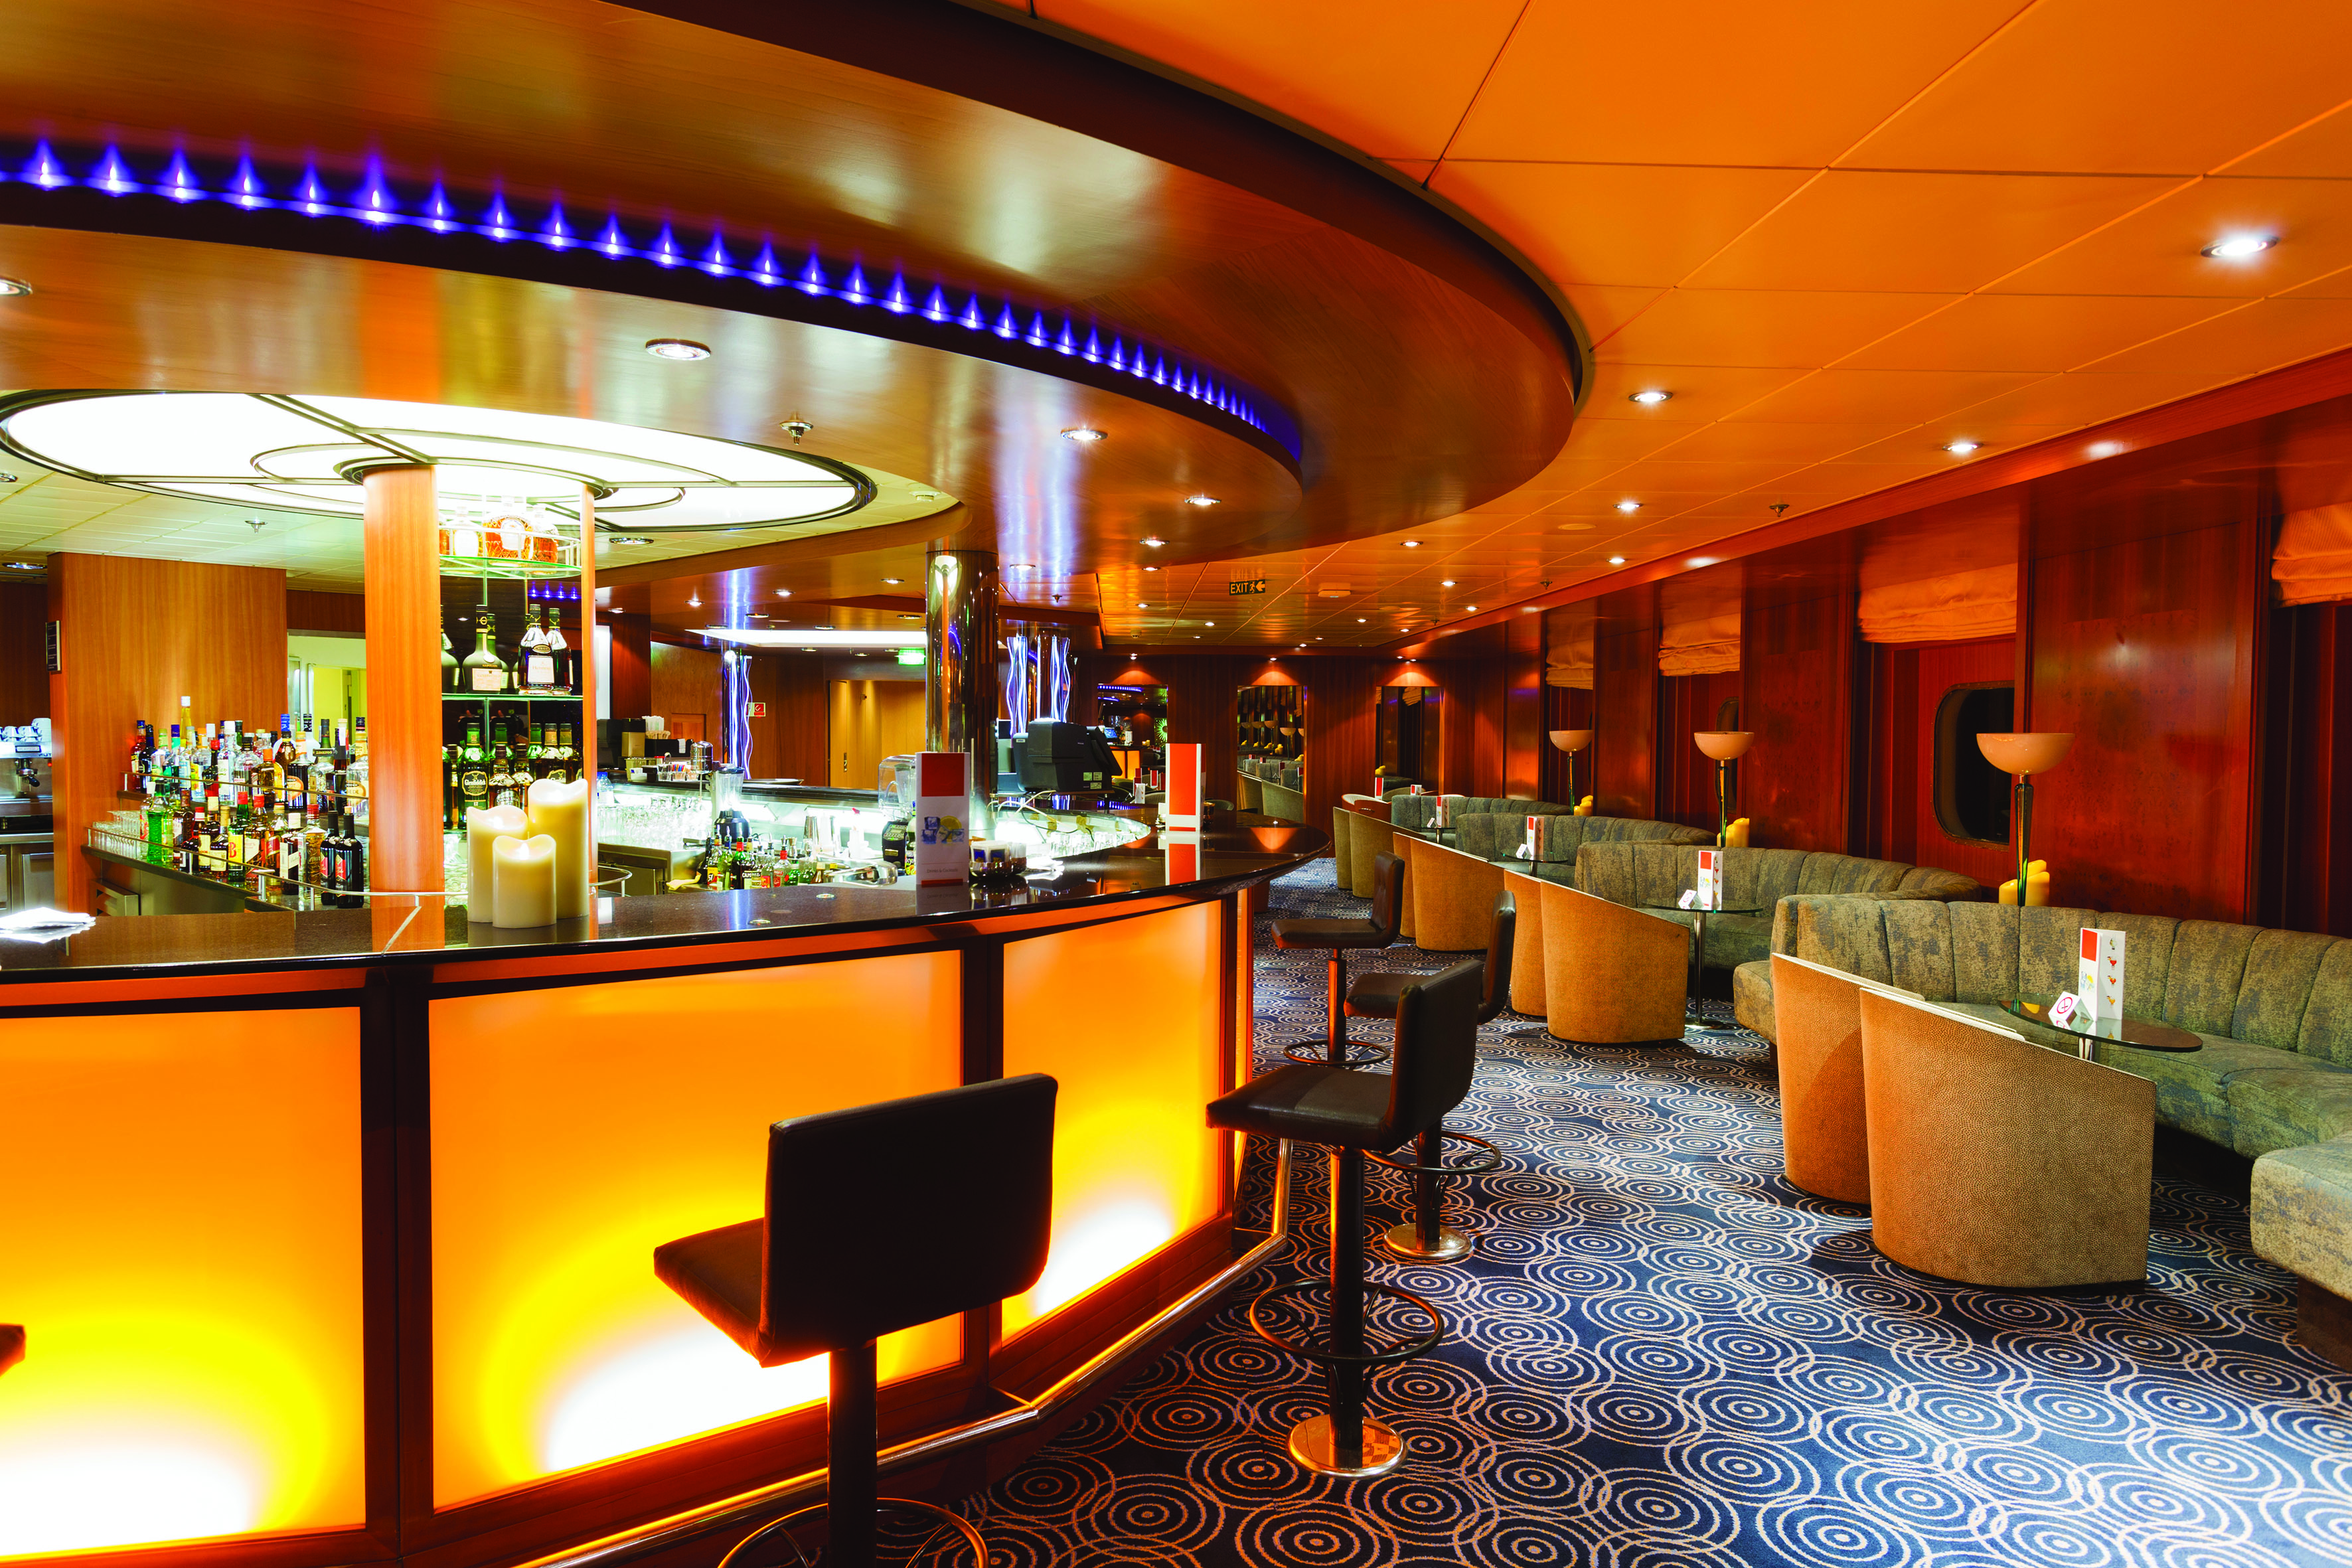 Costa Cruises Costa NeoRiviera Interior Saint Paul de Vence Lounge Bar.jpg